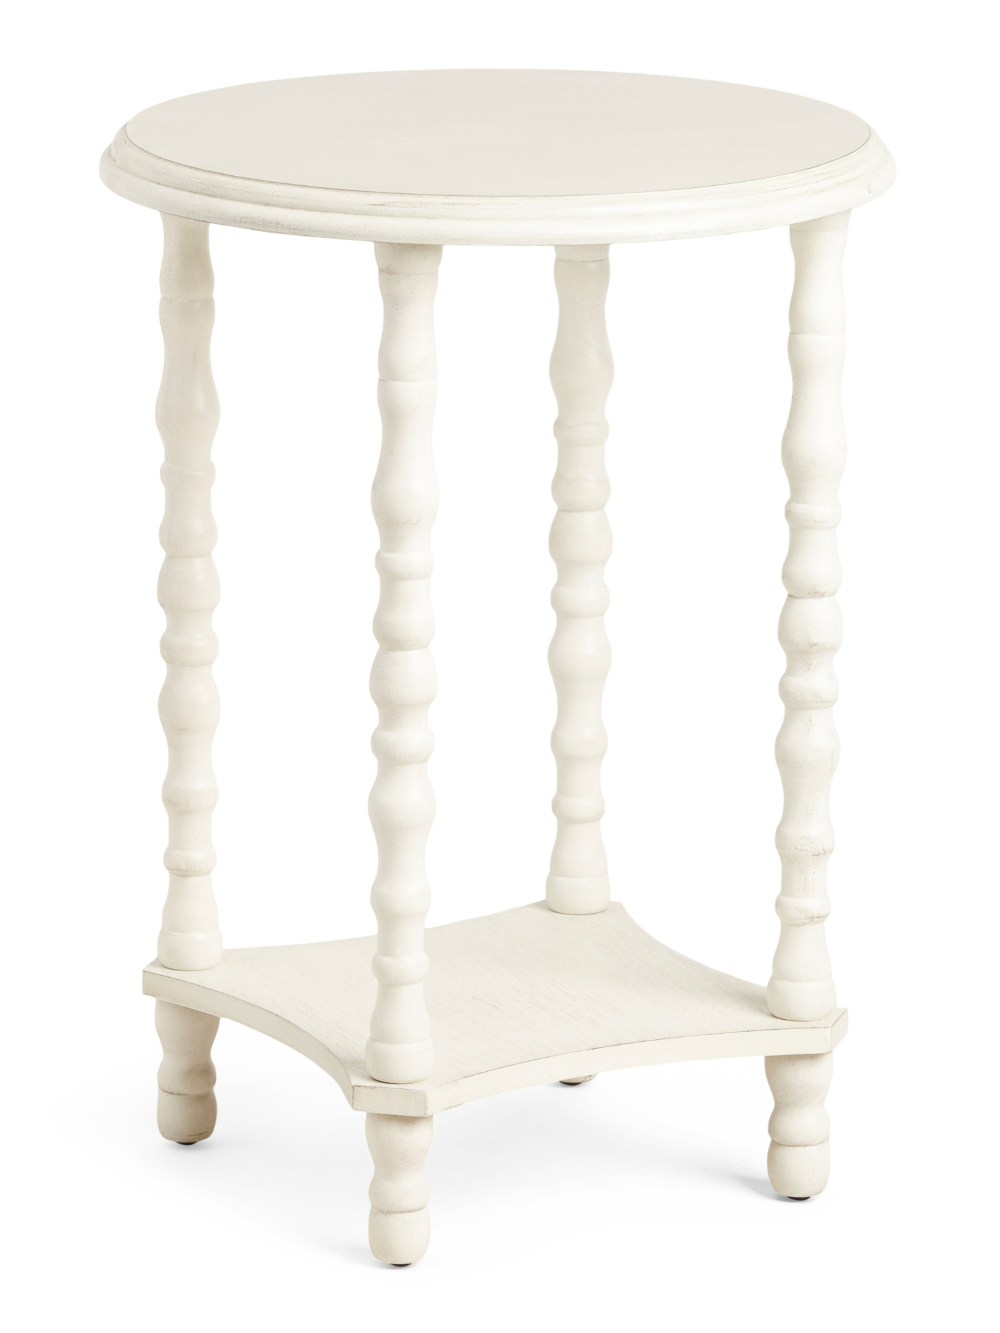 Round Knobby Table Home Marshalls In 2021 Side Table Round Side Table Table [ 1333 x 1000 Pixel ]